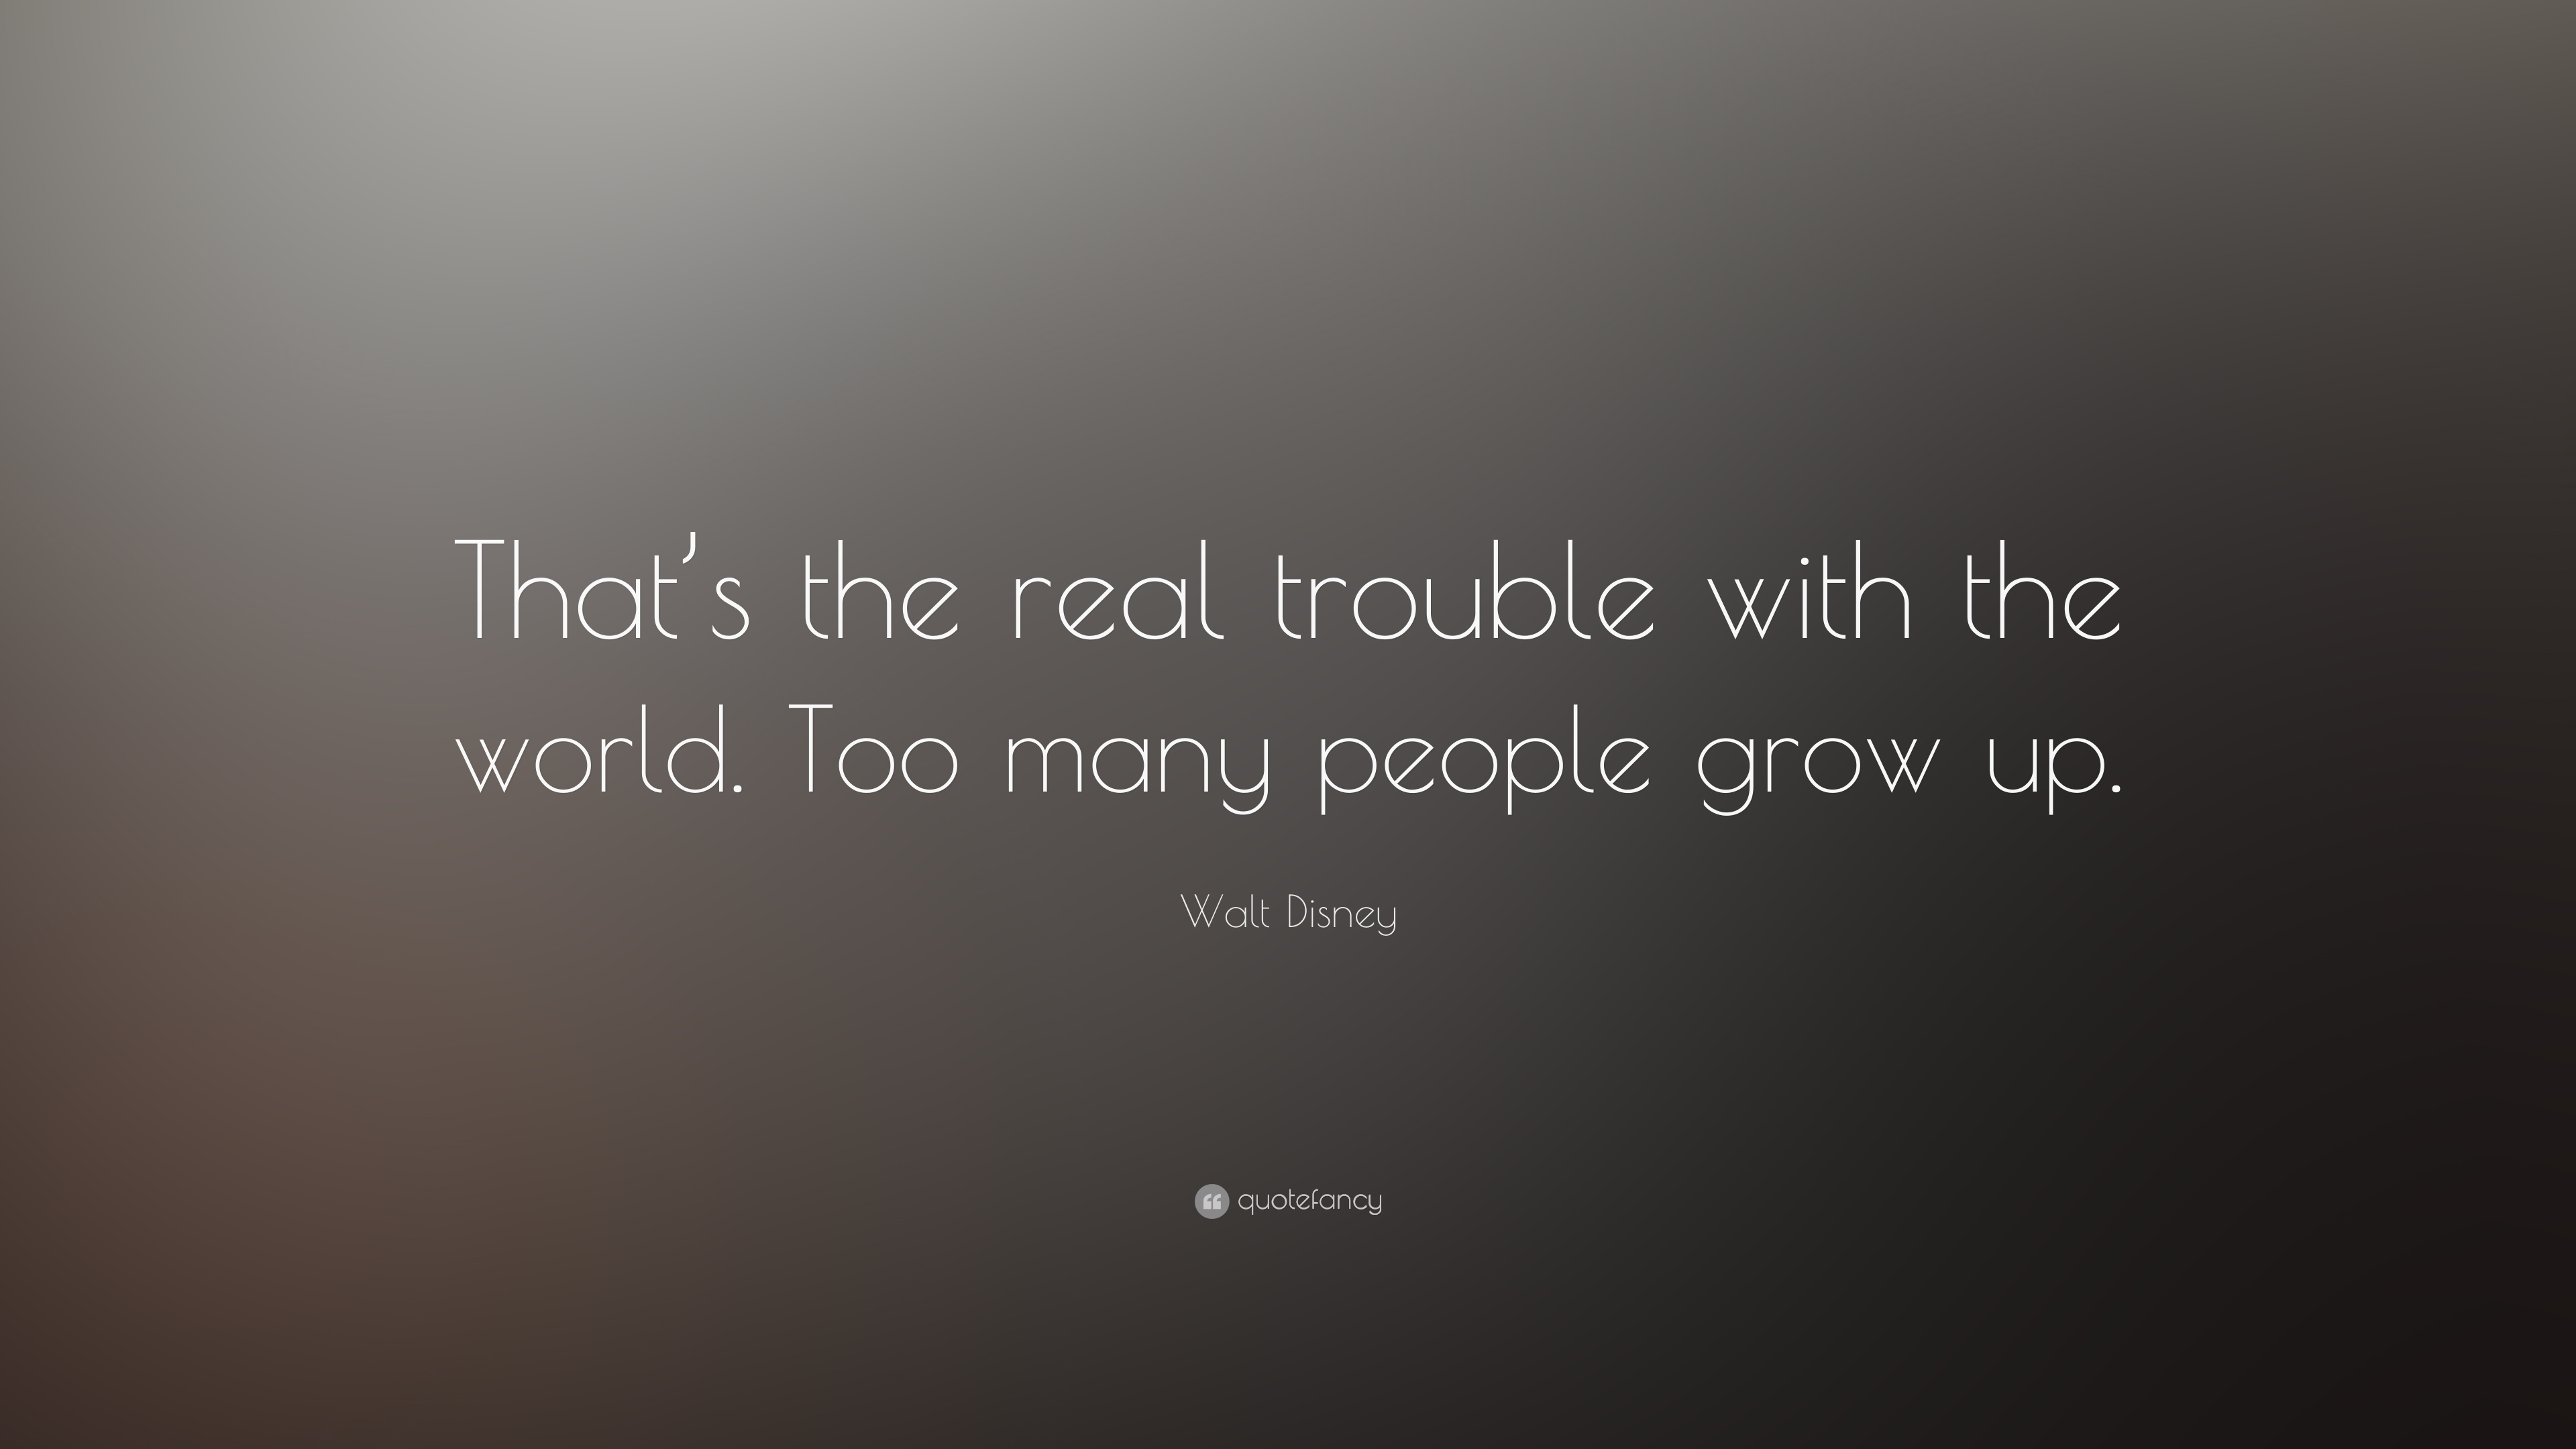 Grow Up Quotes Quotes About Growing Up 41 Wallpapers  Quotefancy